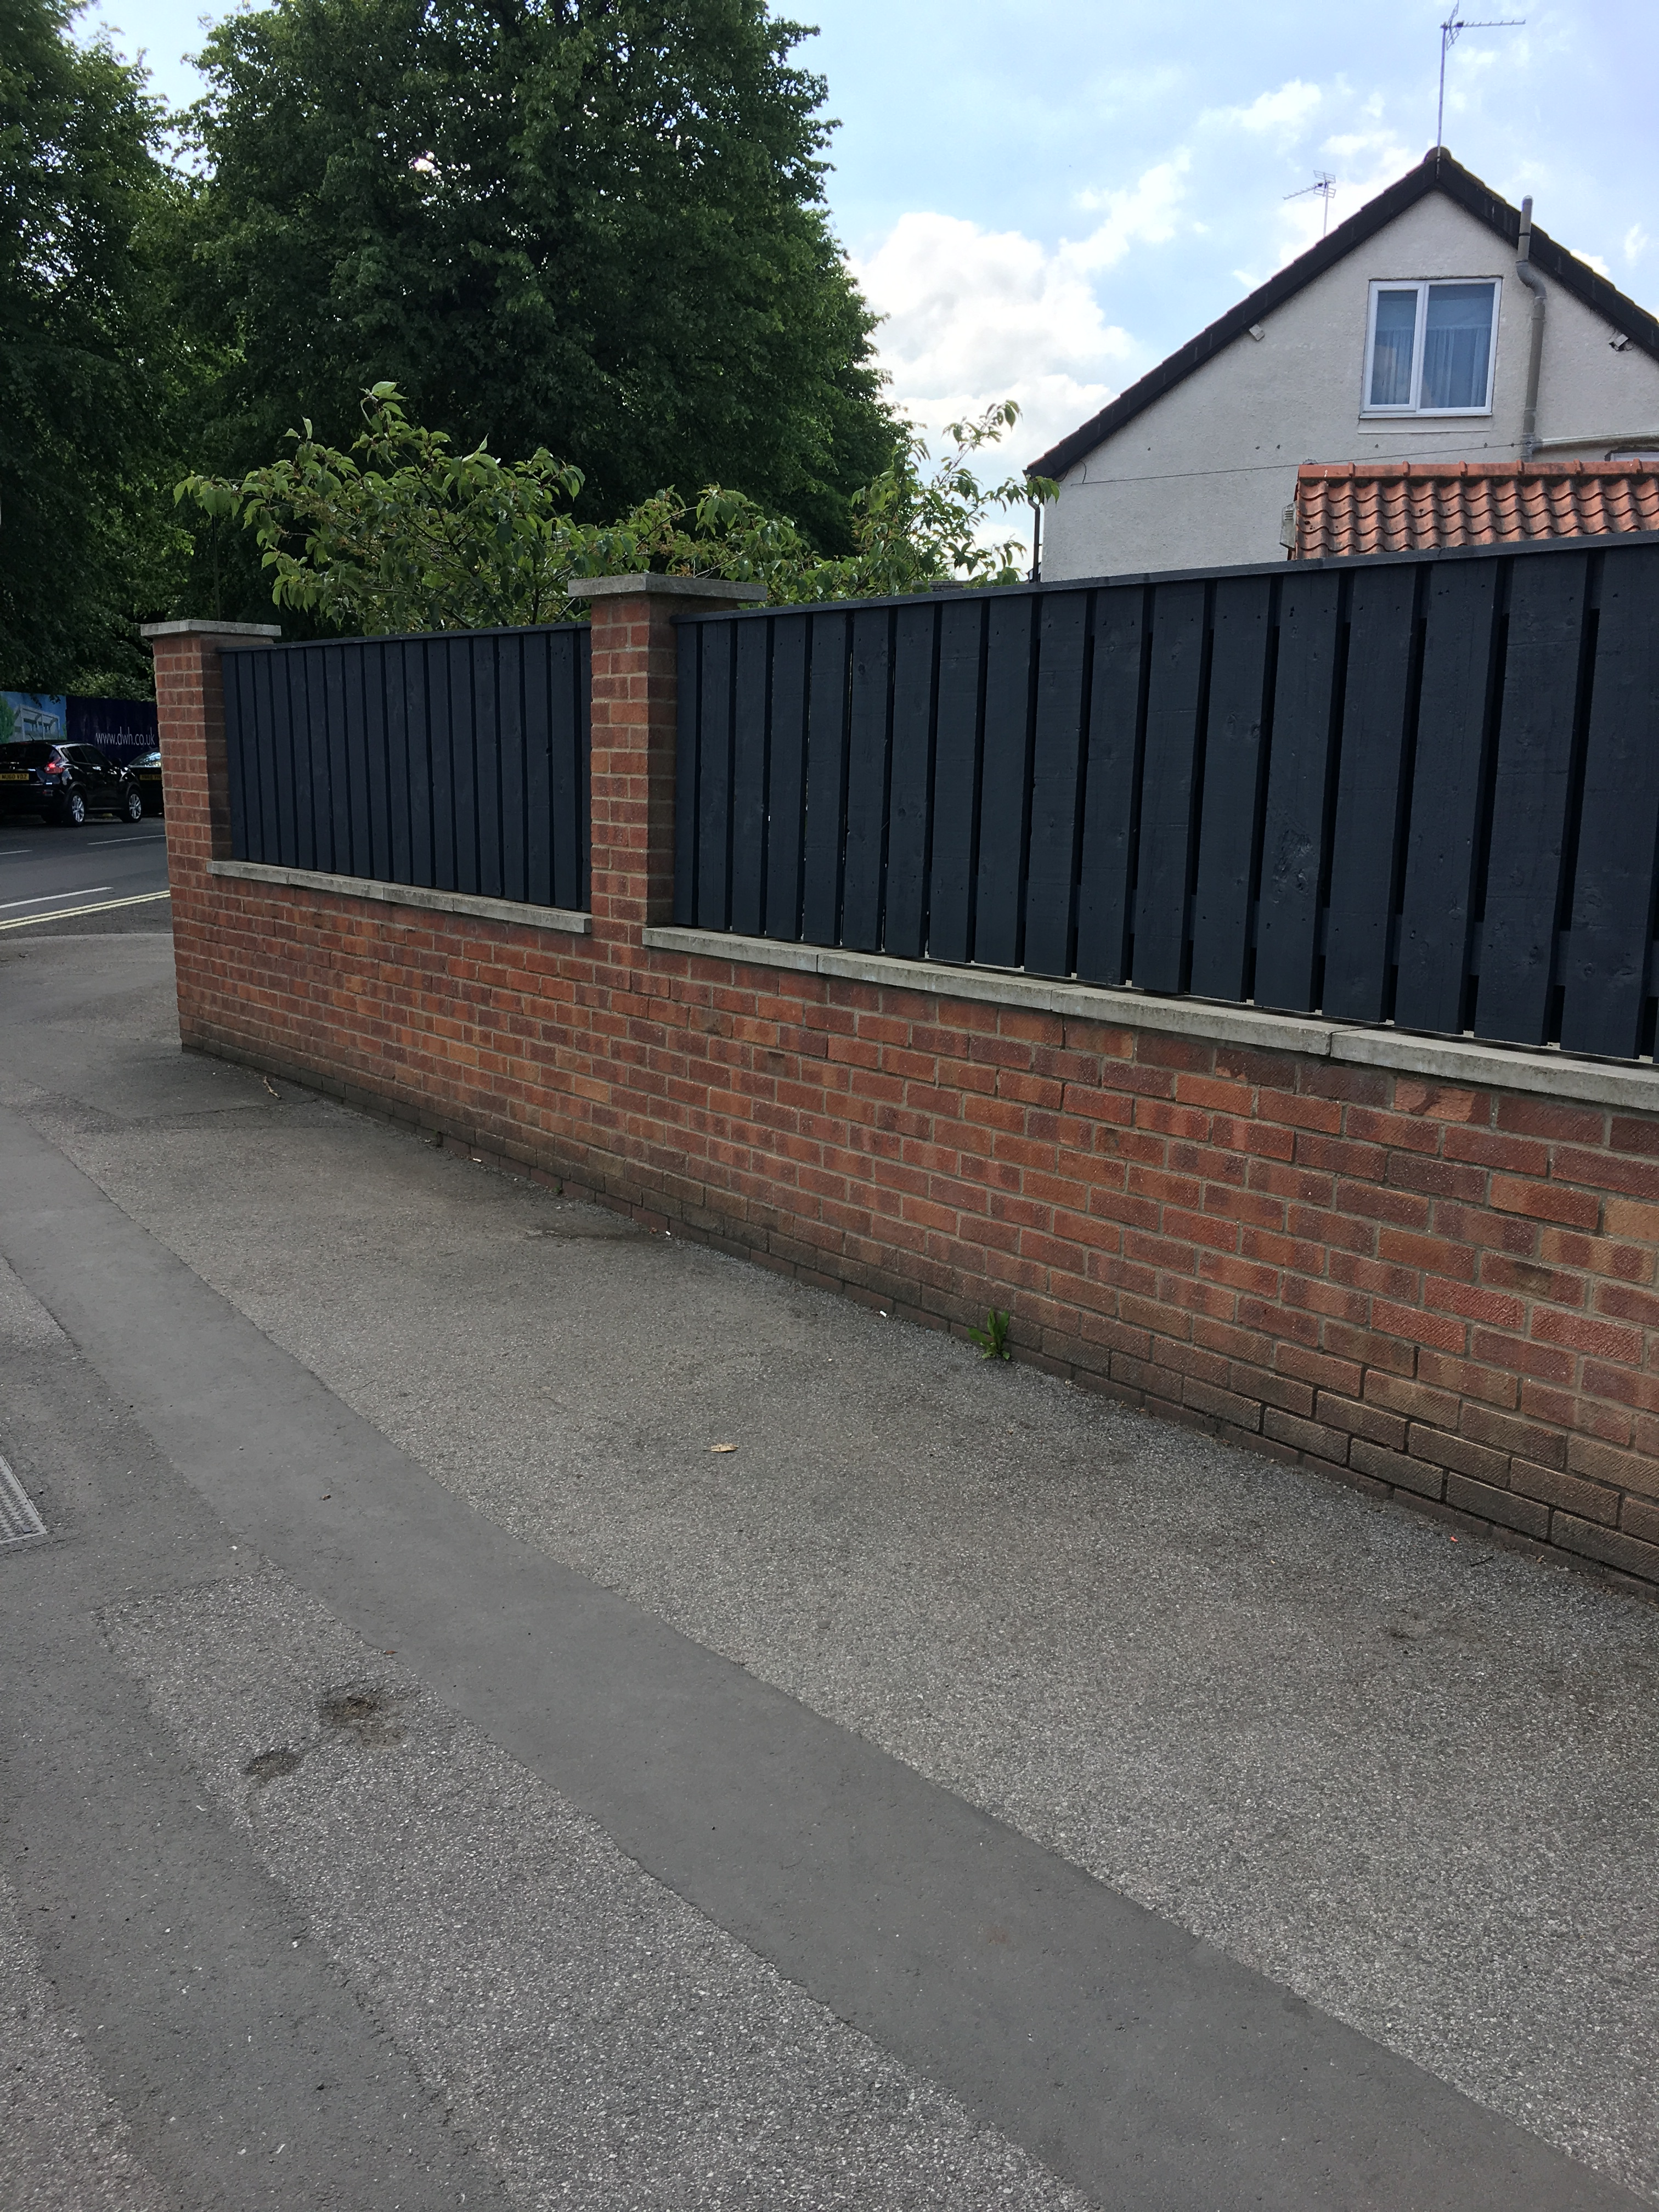 Fence Panels on Top of Wall Landscaping & Gardens BuildHub